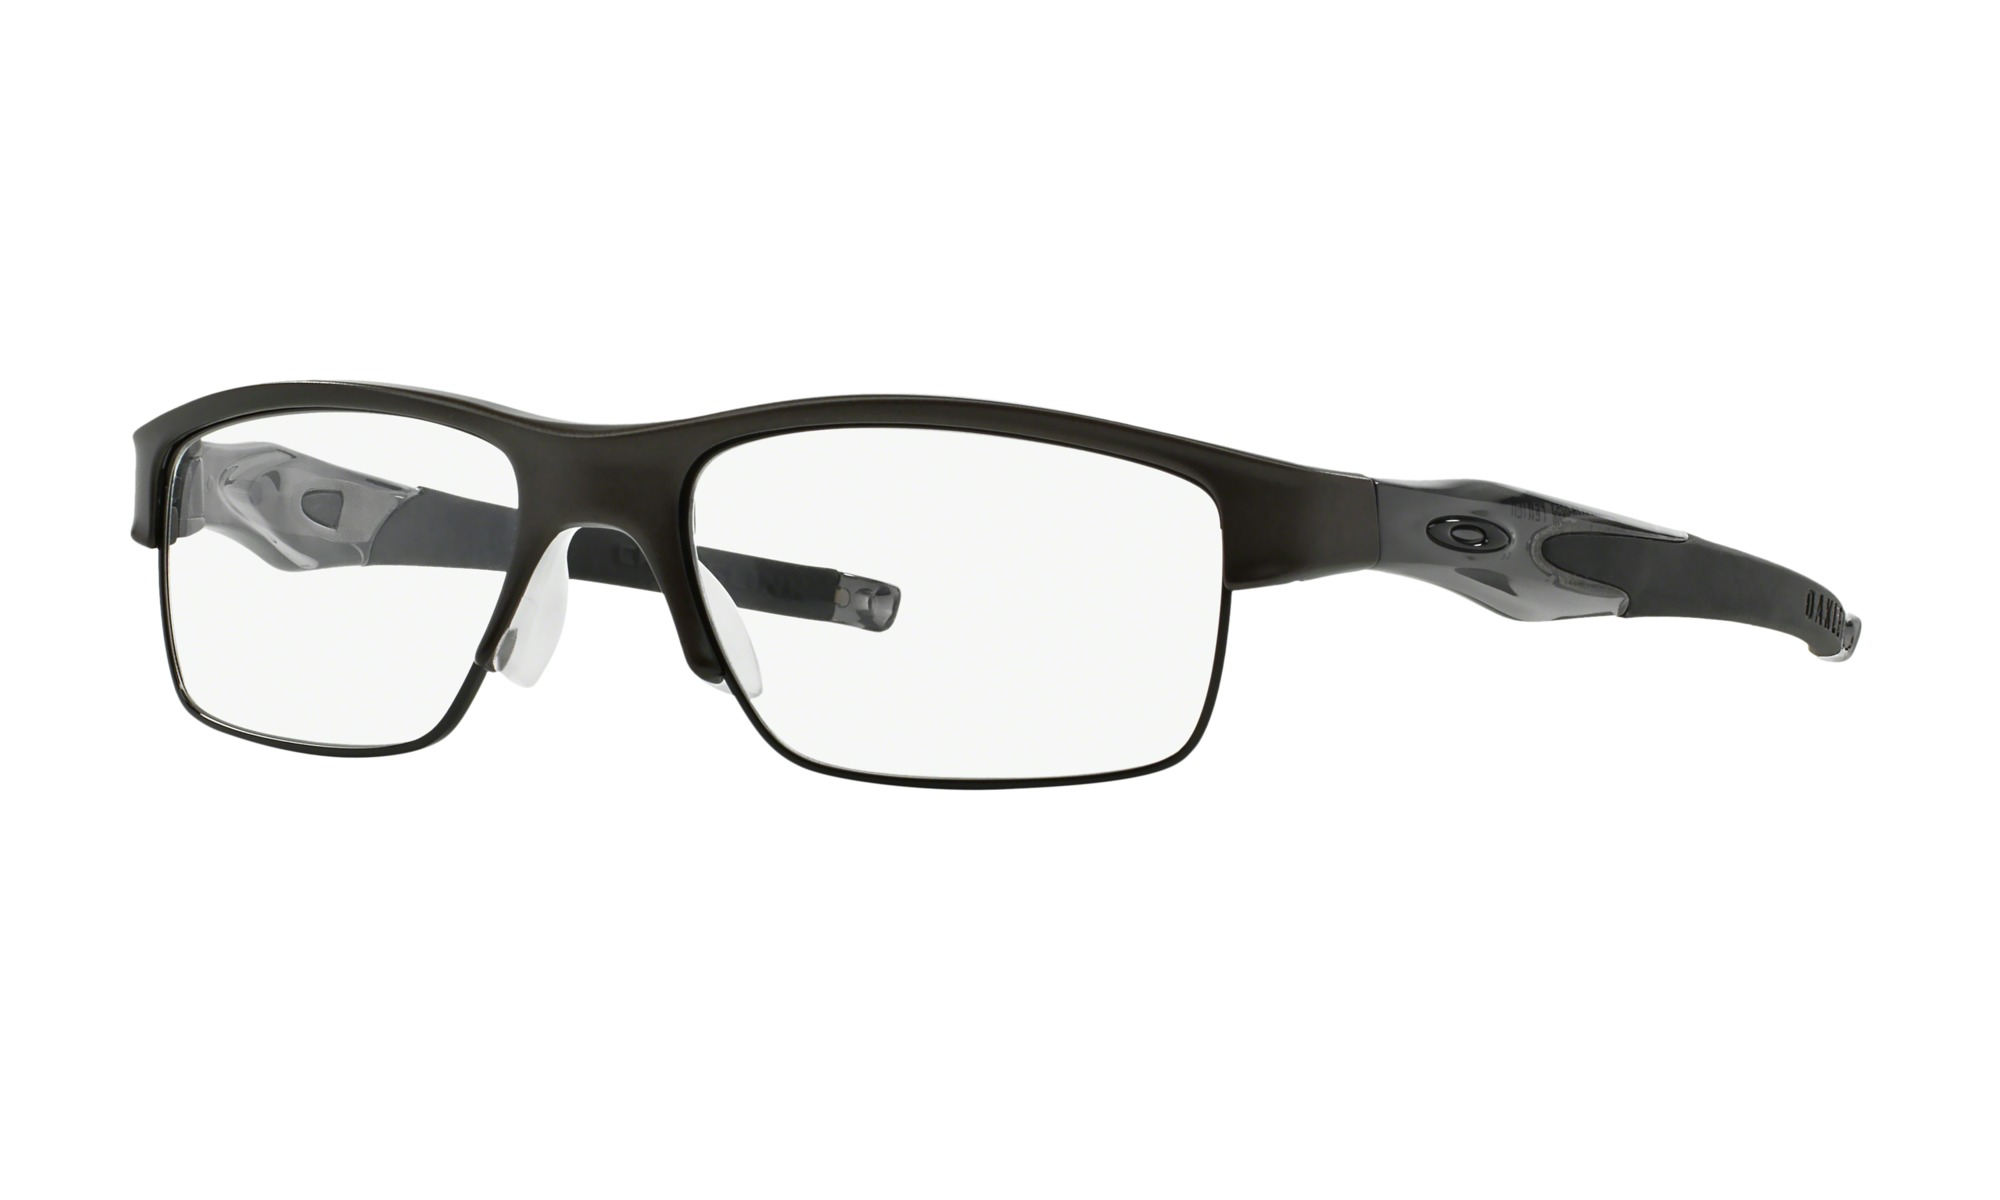 Oakley Men's Crosslink Switch Eyeglasses